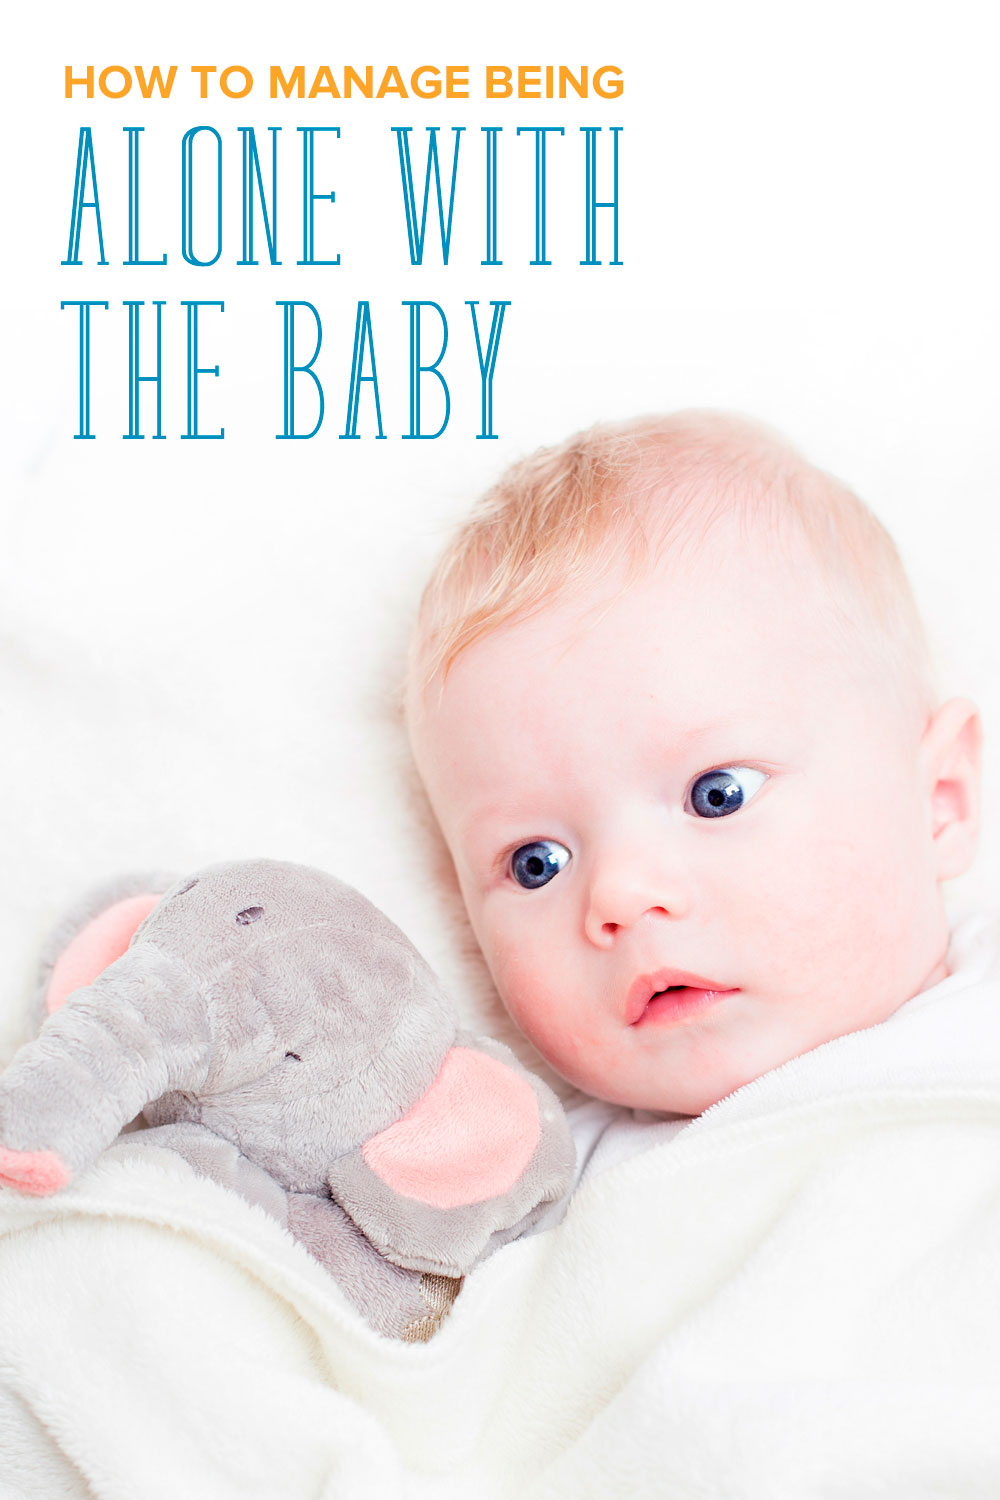 You're partner is going back to work, and you're scared to be left alone with baby. Don't worry: you can manage taking care of your baby alone. Here's how: